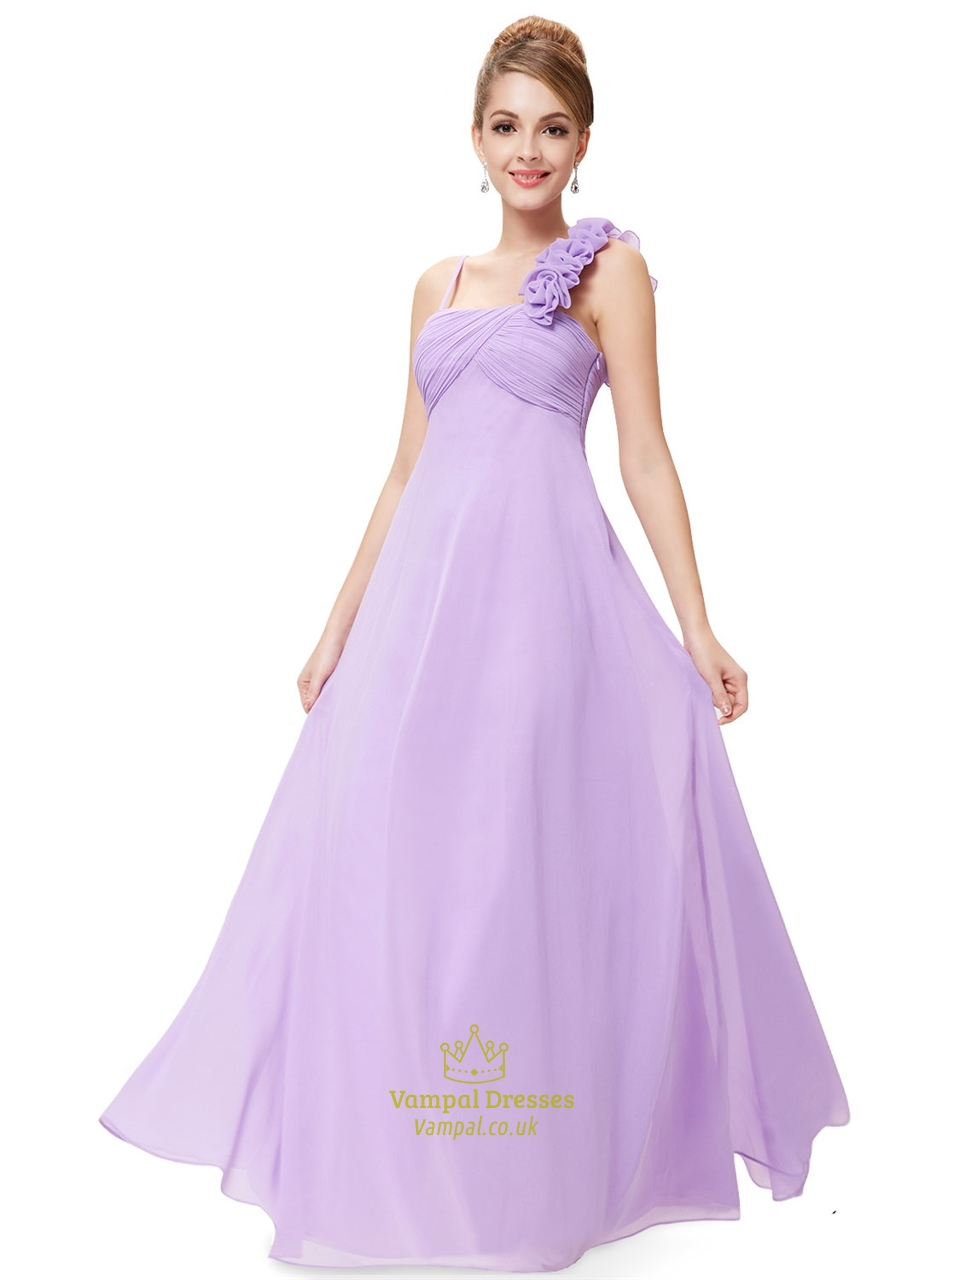 One Shoulder Chiffon Bridesmaid Dresses Uk - Wedding Short Dresses